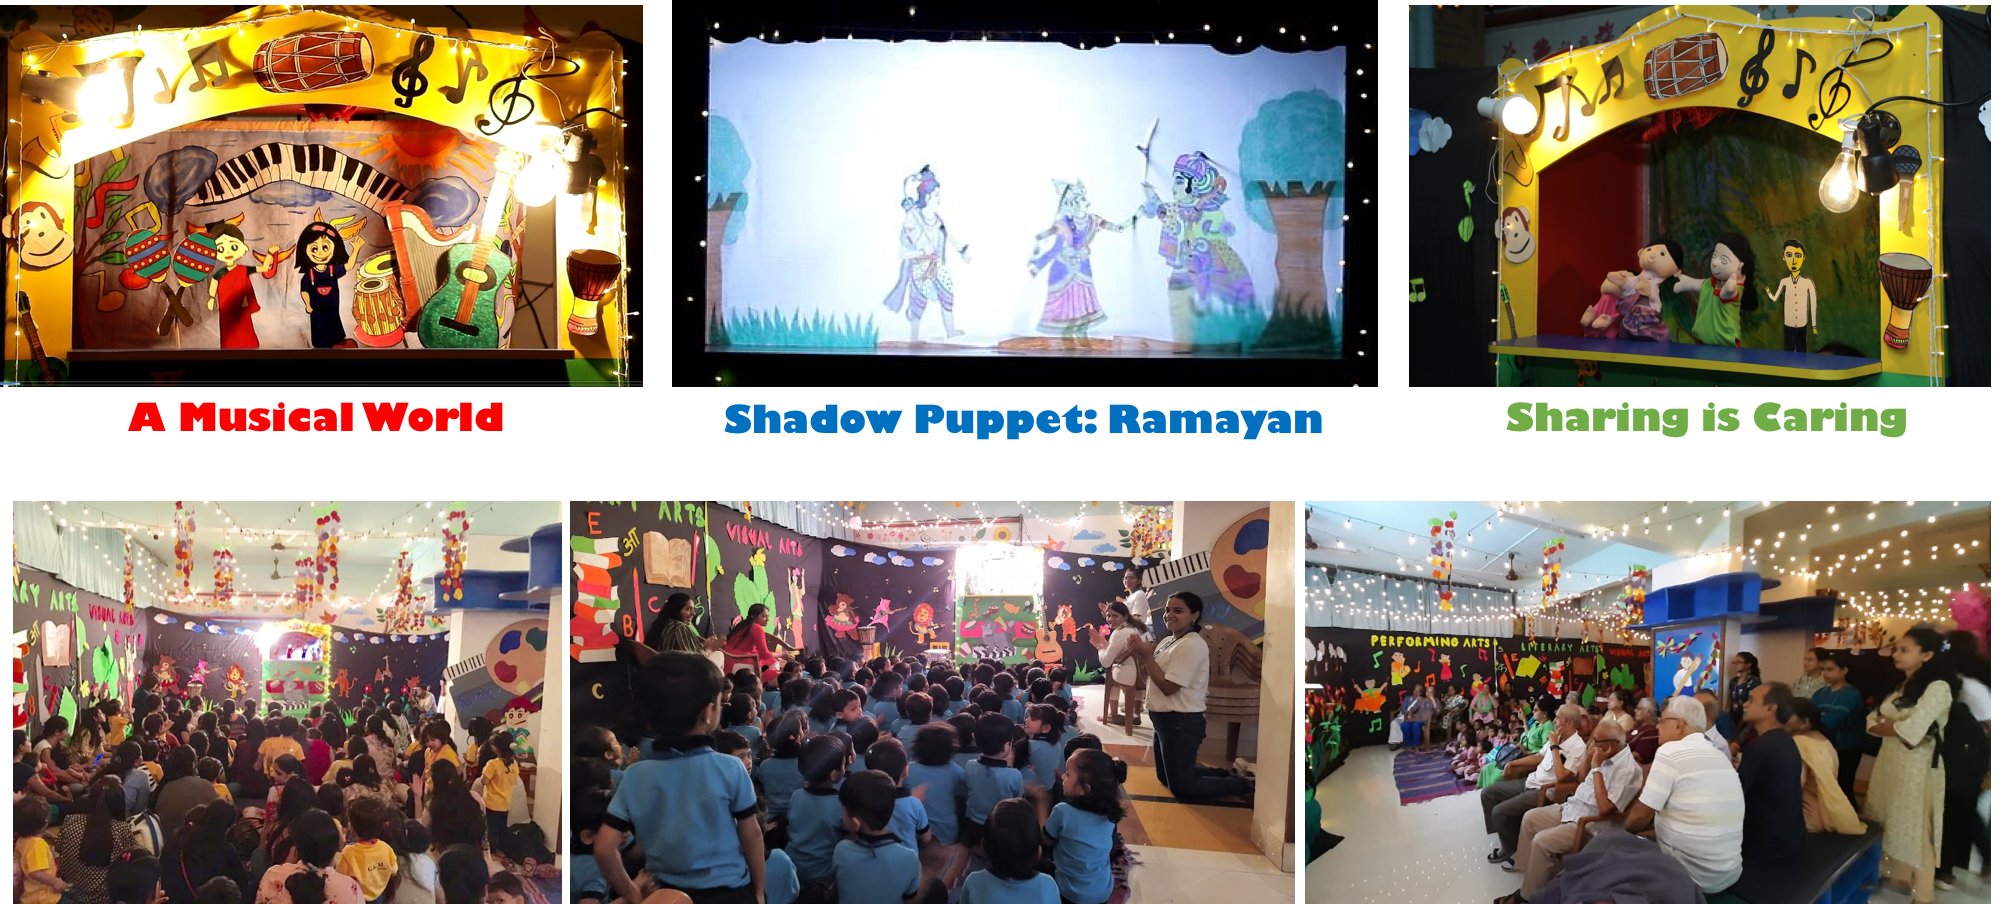 Puppet Shows: 'A Musical World', 'Ramayan', and 'Sharing is Caring'.